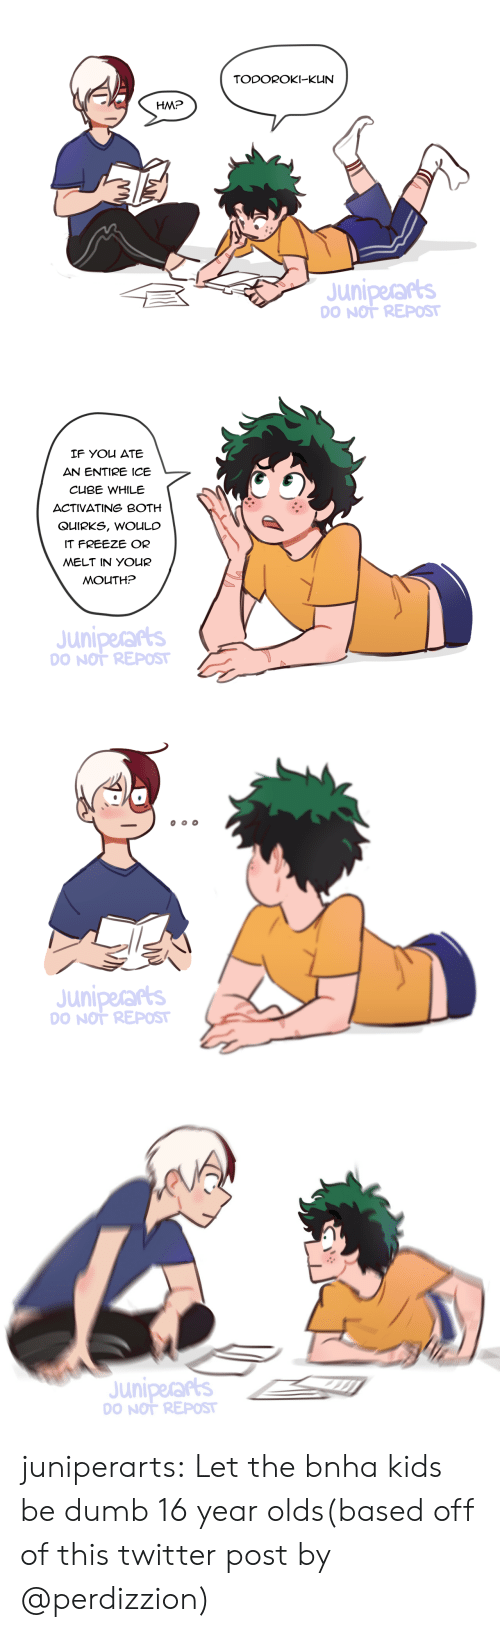 Ice Cube: TODOROKI-KUN  HM?  Juniperars  O NOT REPOST   IF You ATE  AN ENTIRE ICE  CUBE WHILE  ACTIVATING BOTH  QUIRKS, WOULC  IT FREEZE OR  MELT IN YOUR  MOUTH?  Juniperarts  O NOT REPOST   Juniperars  O NOT REPOST   Juniperars  O NOT REPOST juniperarts: Let the bnha kids be dumb 16 year olds(based off of this twitter post by @perdizzion)